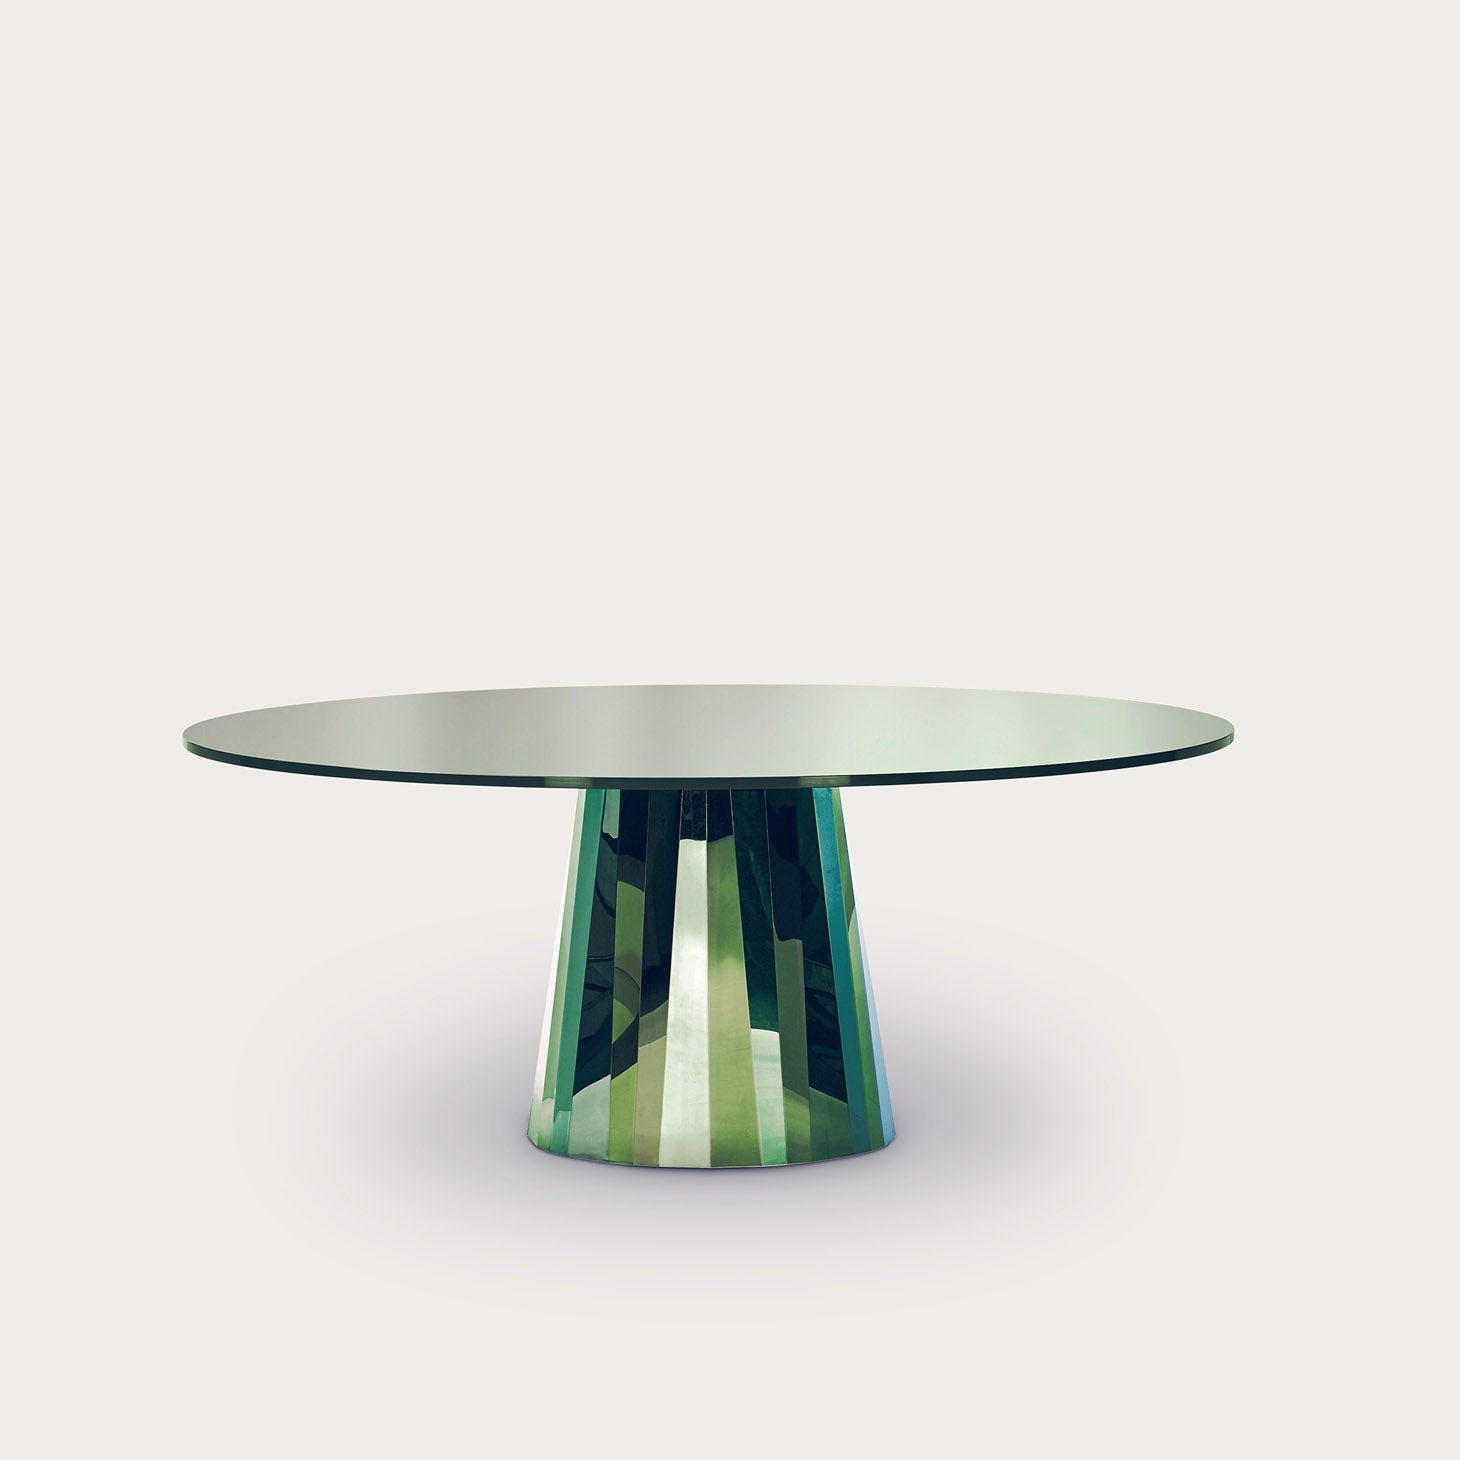 Pli Tables Victoria Wilmotte Designer Furniture Sku: 001-230-10264